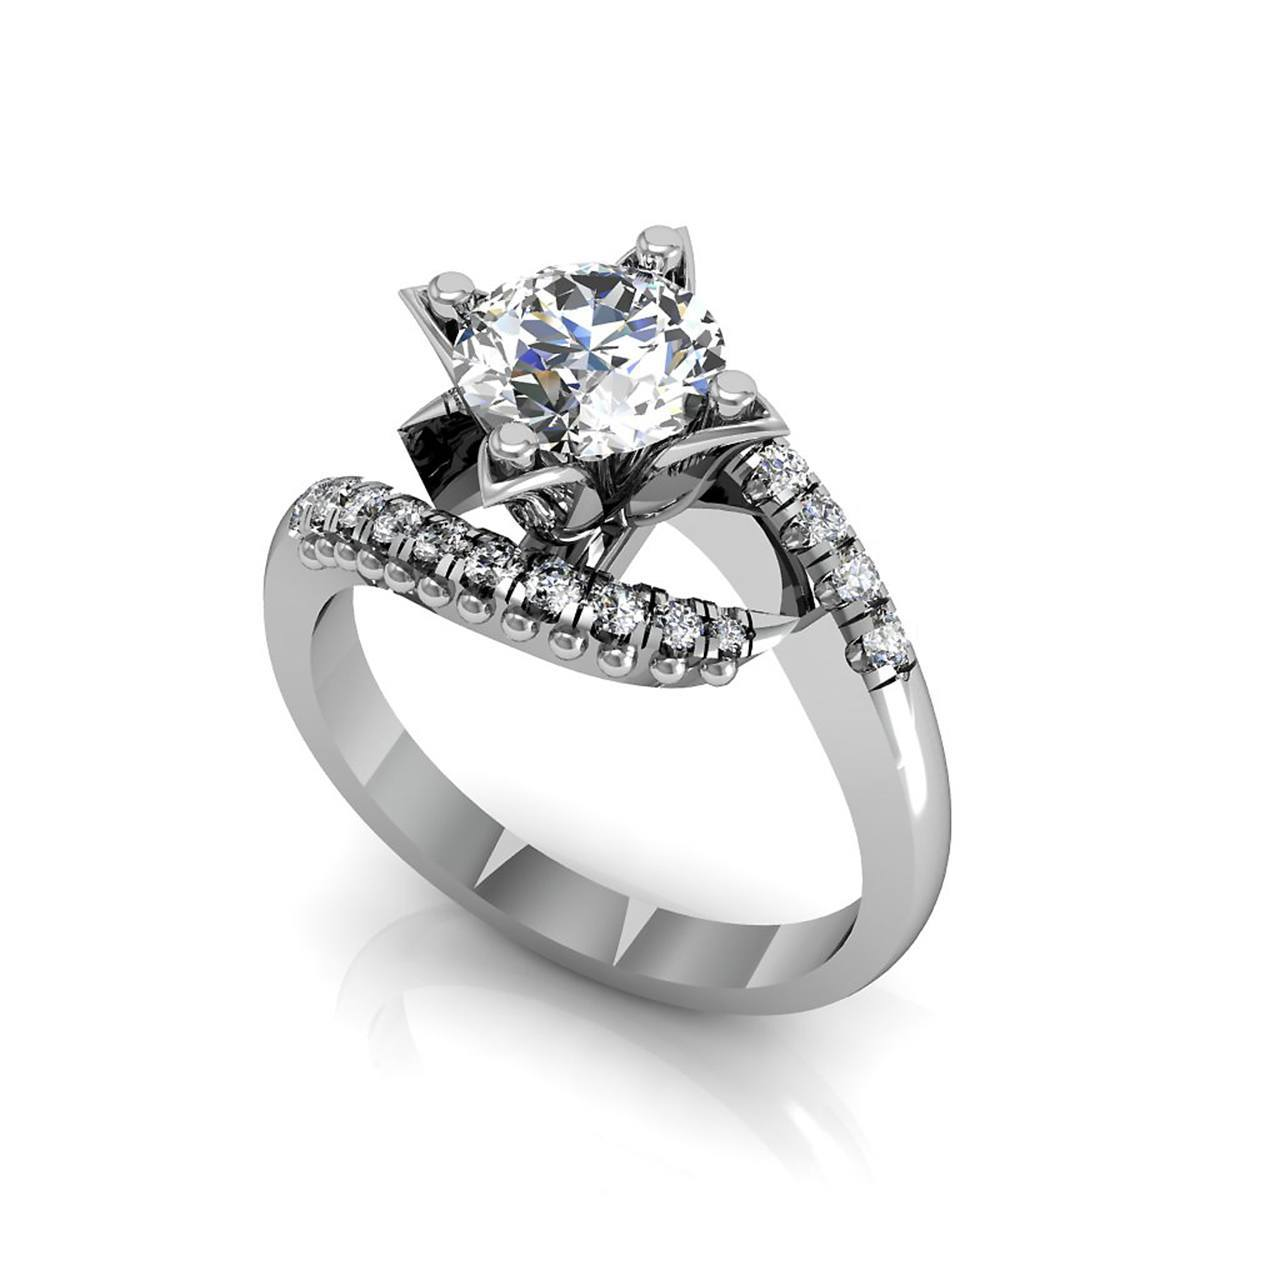 The Infinity 1.00 CT. TW. White Sapphire 14K Gold Engagement Ring